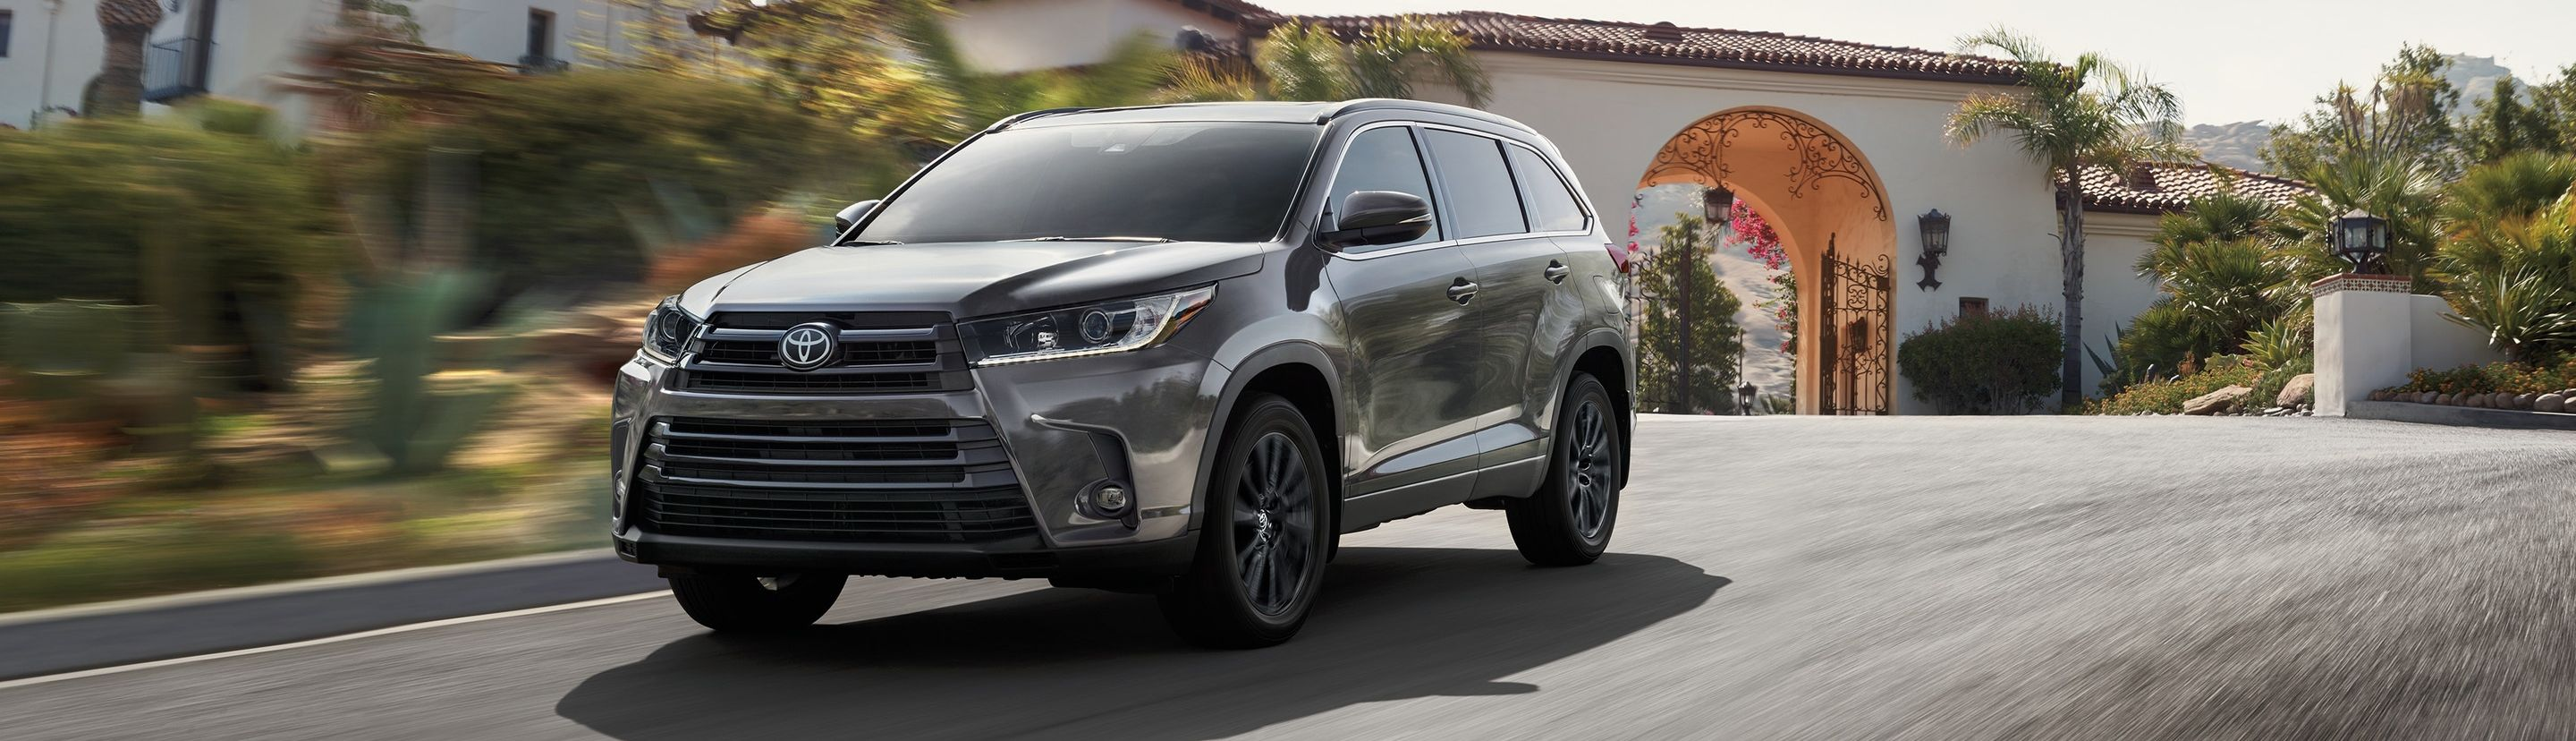 2019 Toyota Highlander Safety Features near Glen Mills, PA